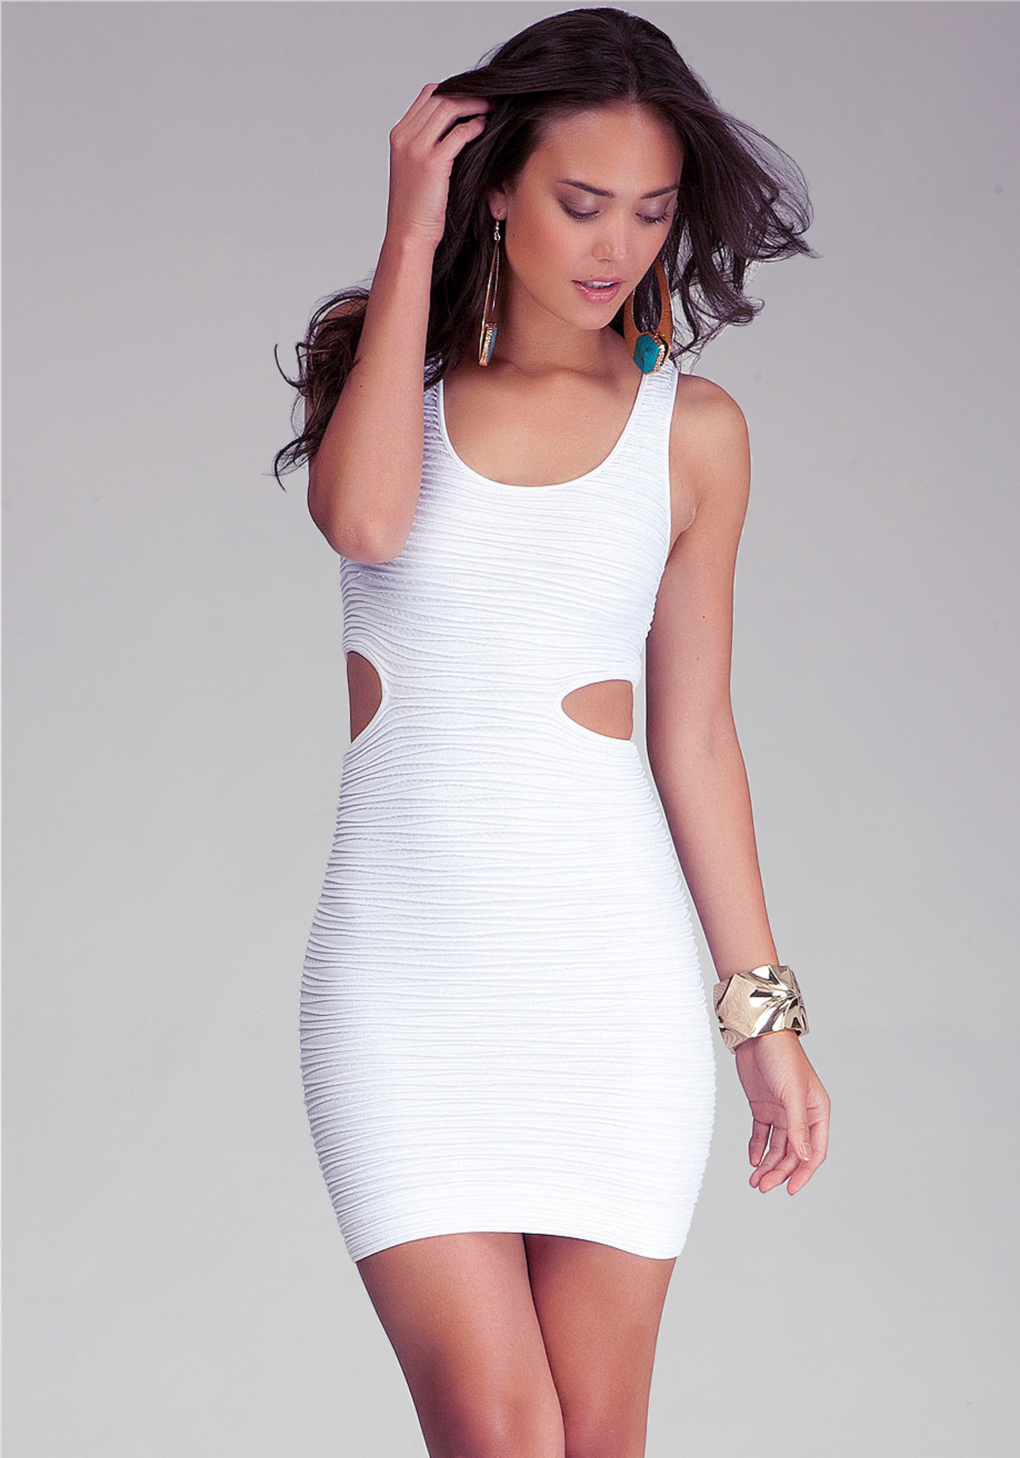 Bebe Side Cutout Bodycon Tank Dress In White Lyst